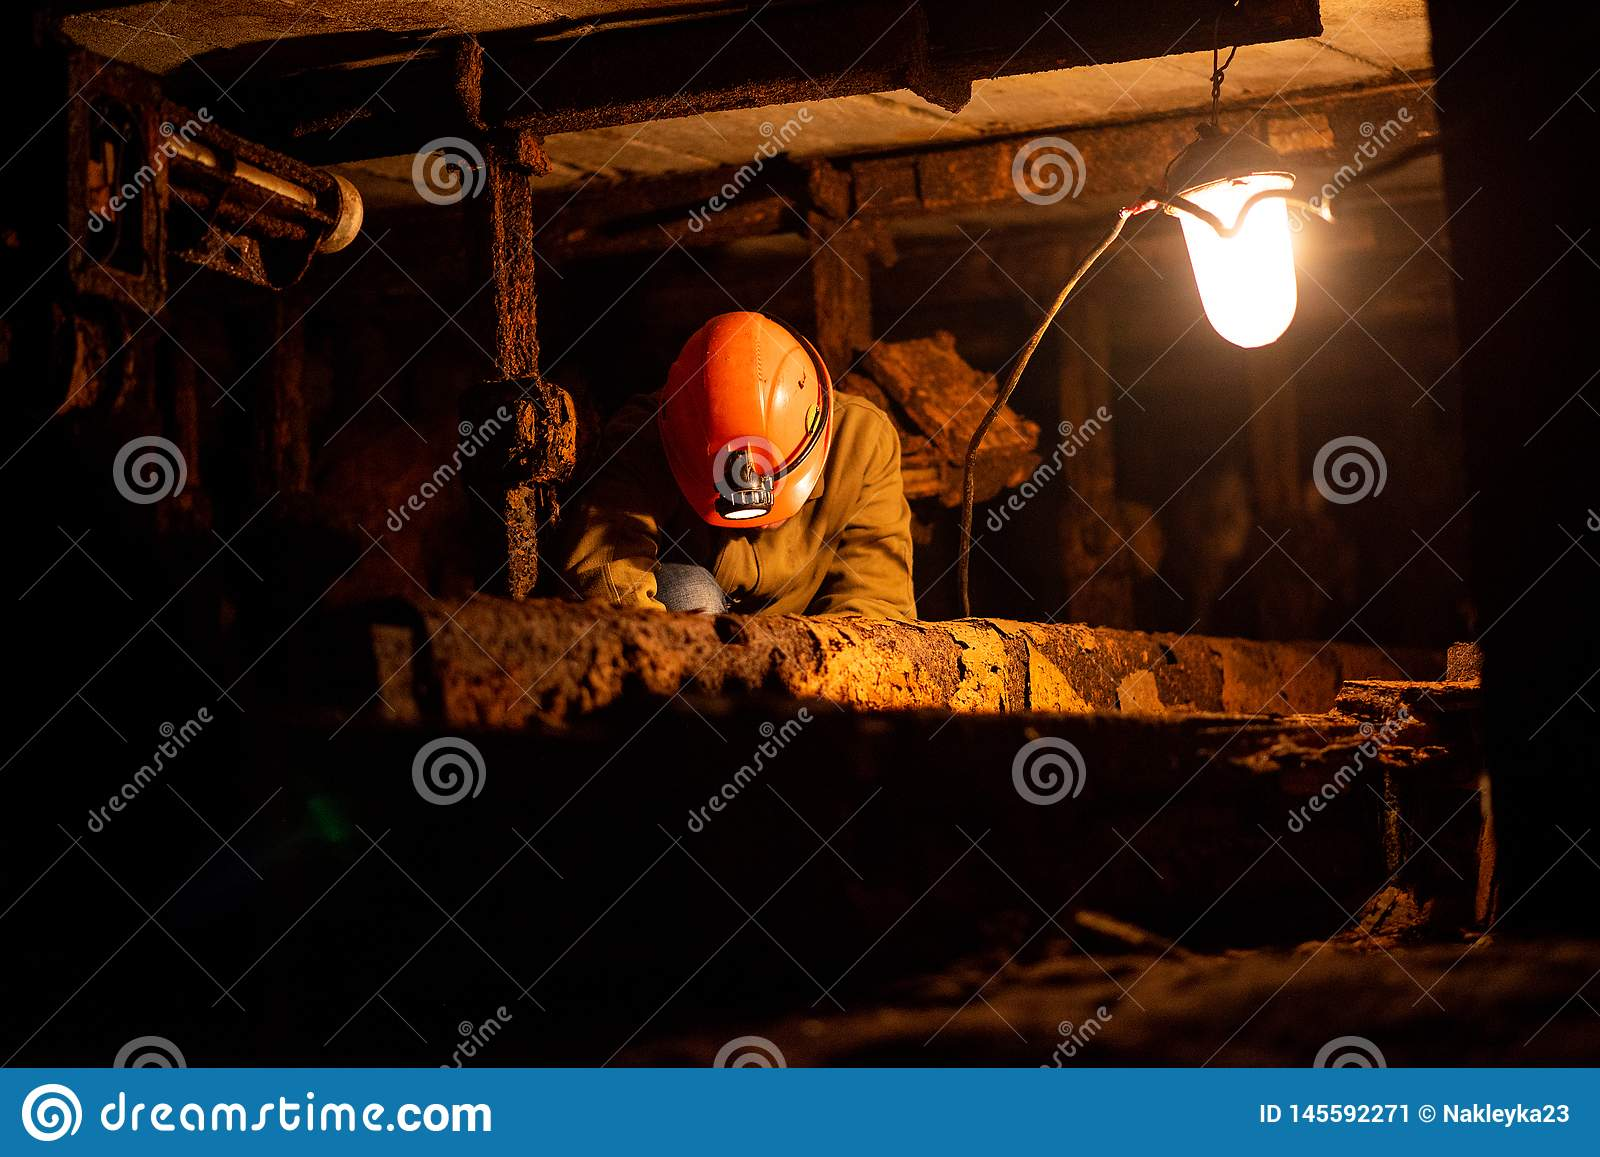 Young guy in a working uniform and protective helmets, sitting in a low tunnel